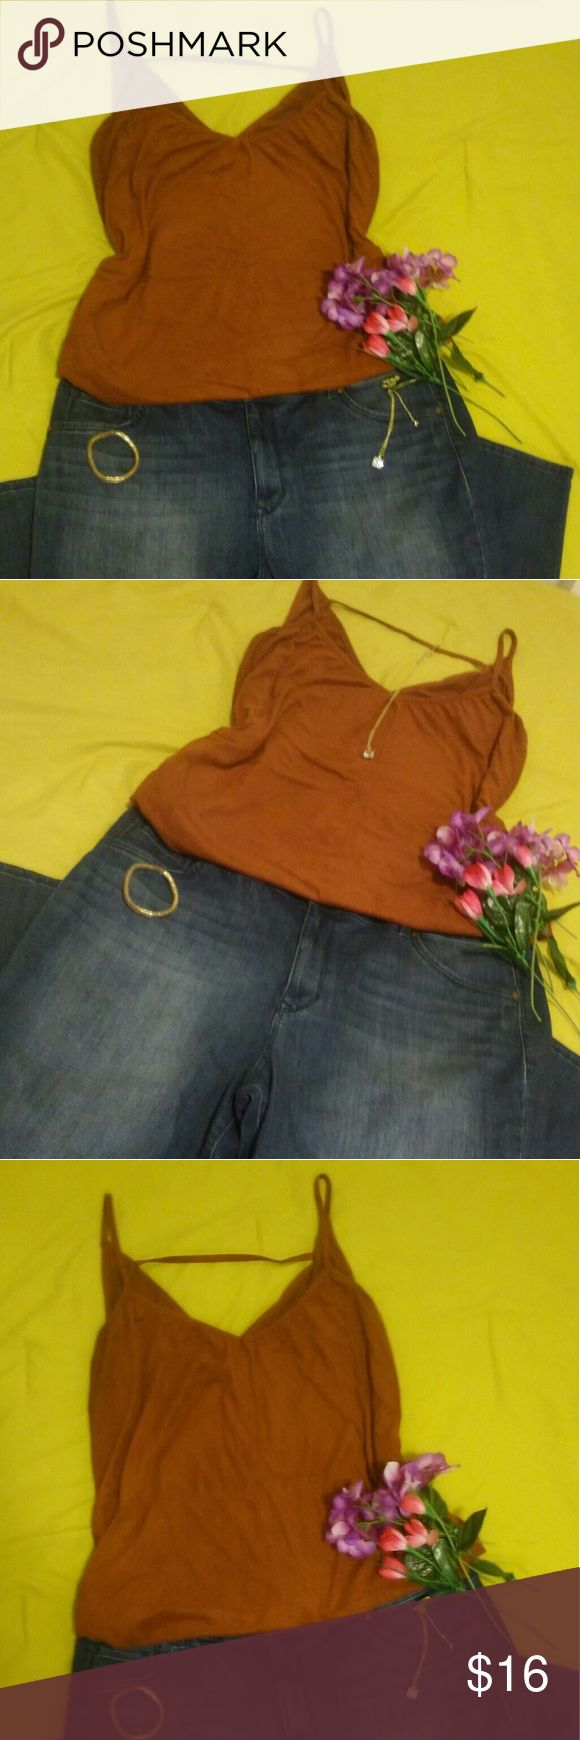 "👑 ASOS CURVE +""Summer days and lemonade"" Shirt 👑Back to school flash sale!  ASOS Curve Strappy Top in Autumn Burnt orange (color is a pretty orange brown autumn leaf color)  Nicely fits a true to size 3x (24)  Hugs bust. Drapes along waist. Stretch felt material👌  If you like a oversized trendy hipster look a 2x TOO *Not torrid, labeled Torrid only for plus size exposure* ASOS Curve Tops Tank Tops"